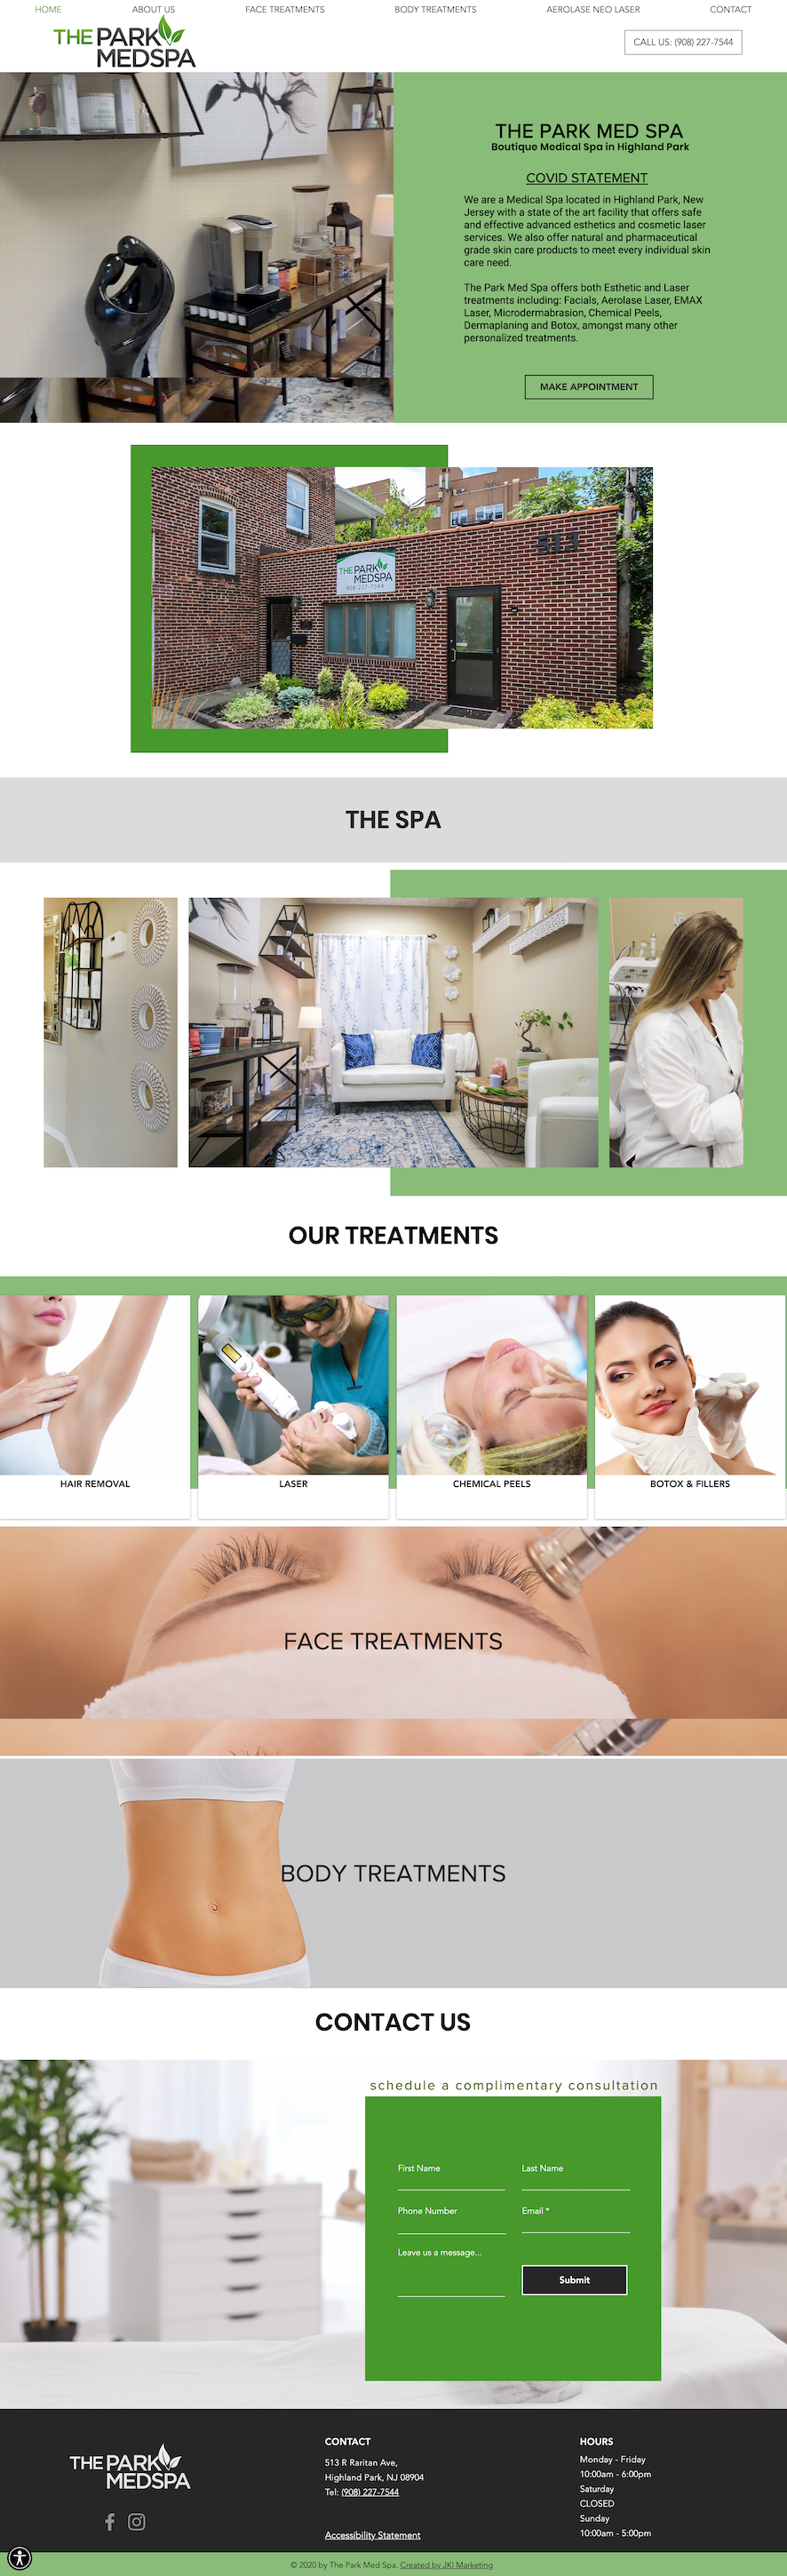 Web design for The Park Med Spa in NJ